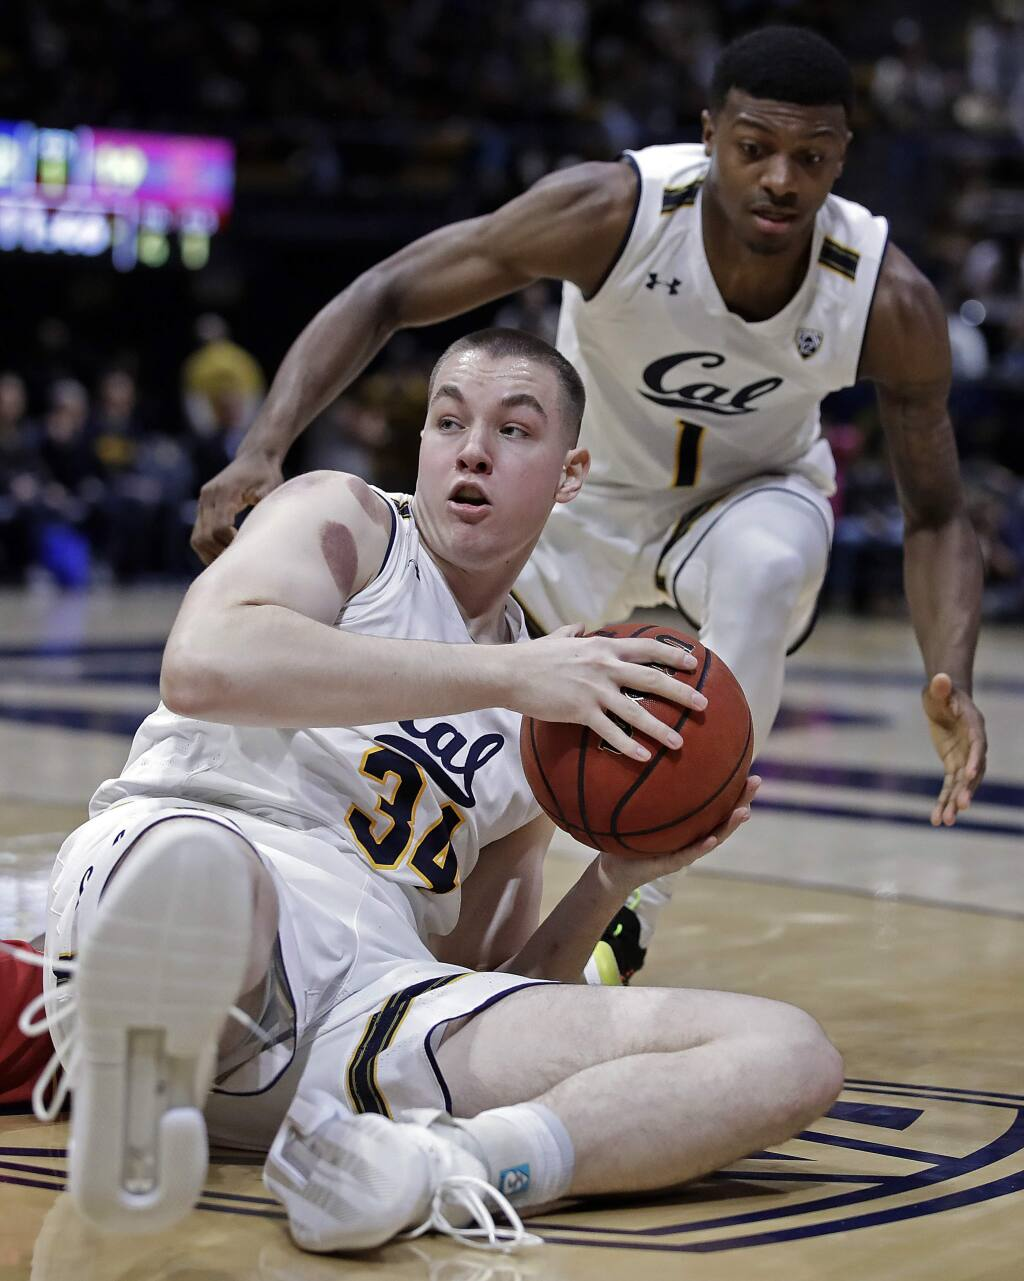 Cal's Grant Anticevich (34) looks to pass from the floor during the first half against USC on Saturday, Feb. 16, 2019, in Berkeley. (AP Photo/Ben Margot)